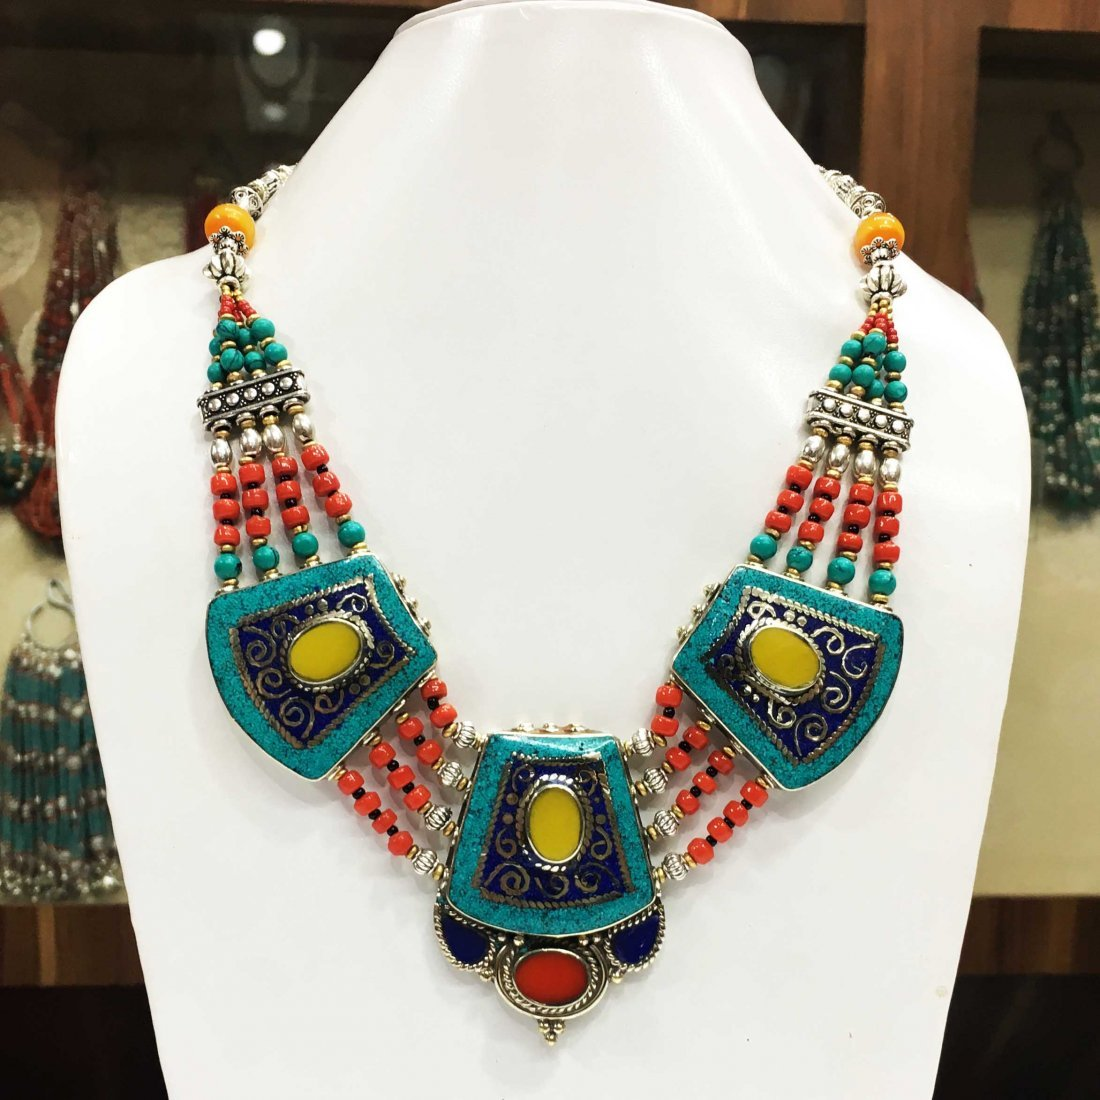 Natural Turquoise with Coral Beads Necklace